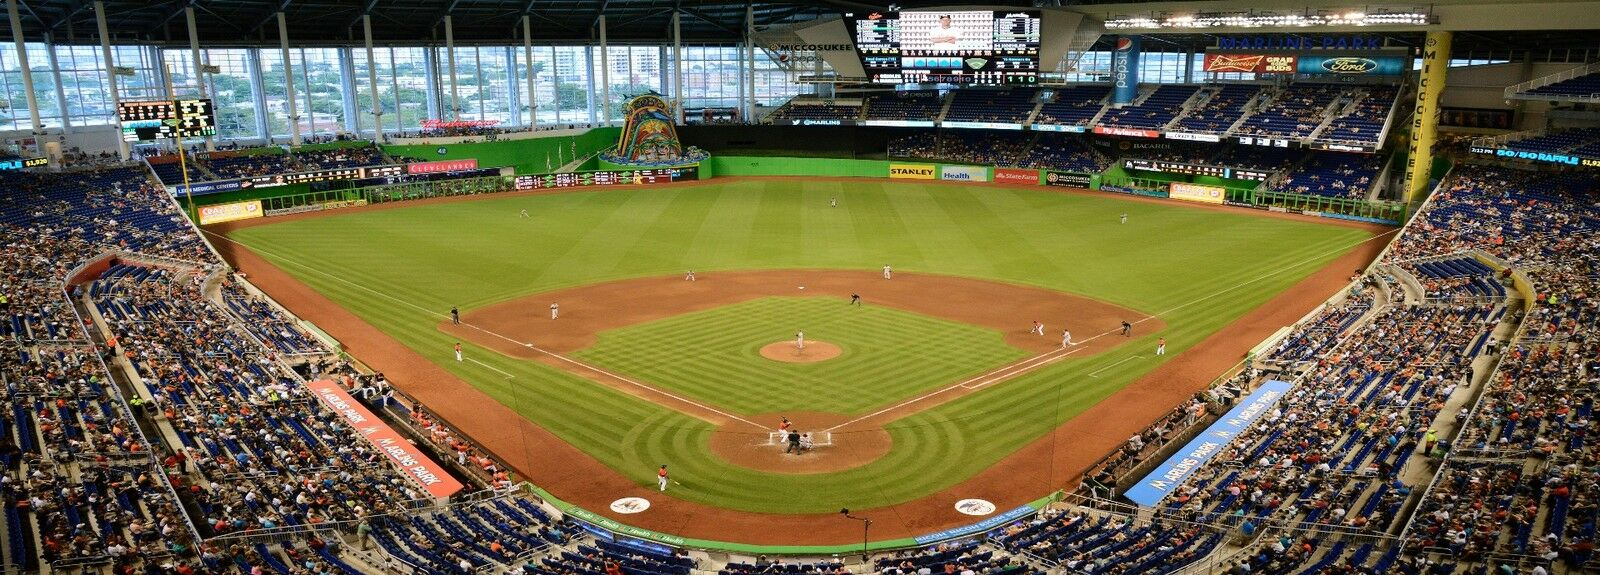 Colorado Rockies at Miami Marlins Tickets (Cafecito Cup)